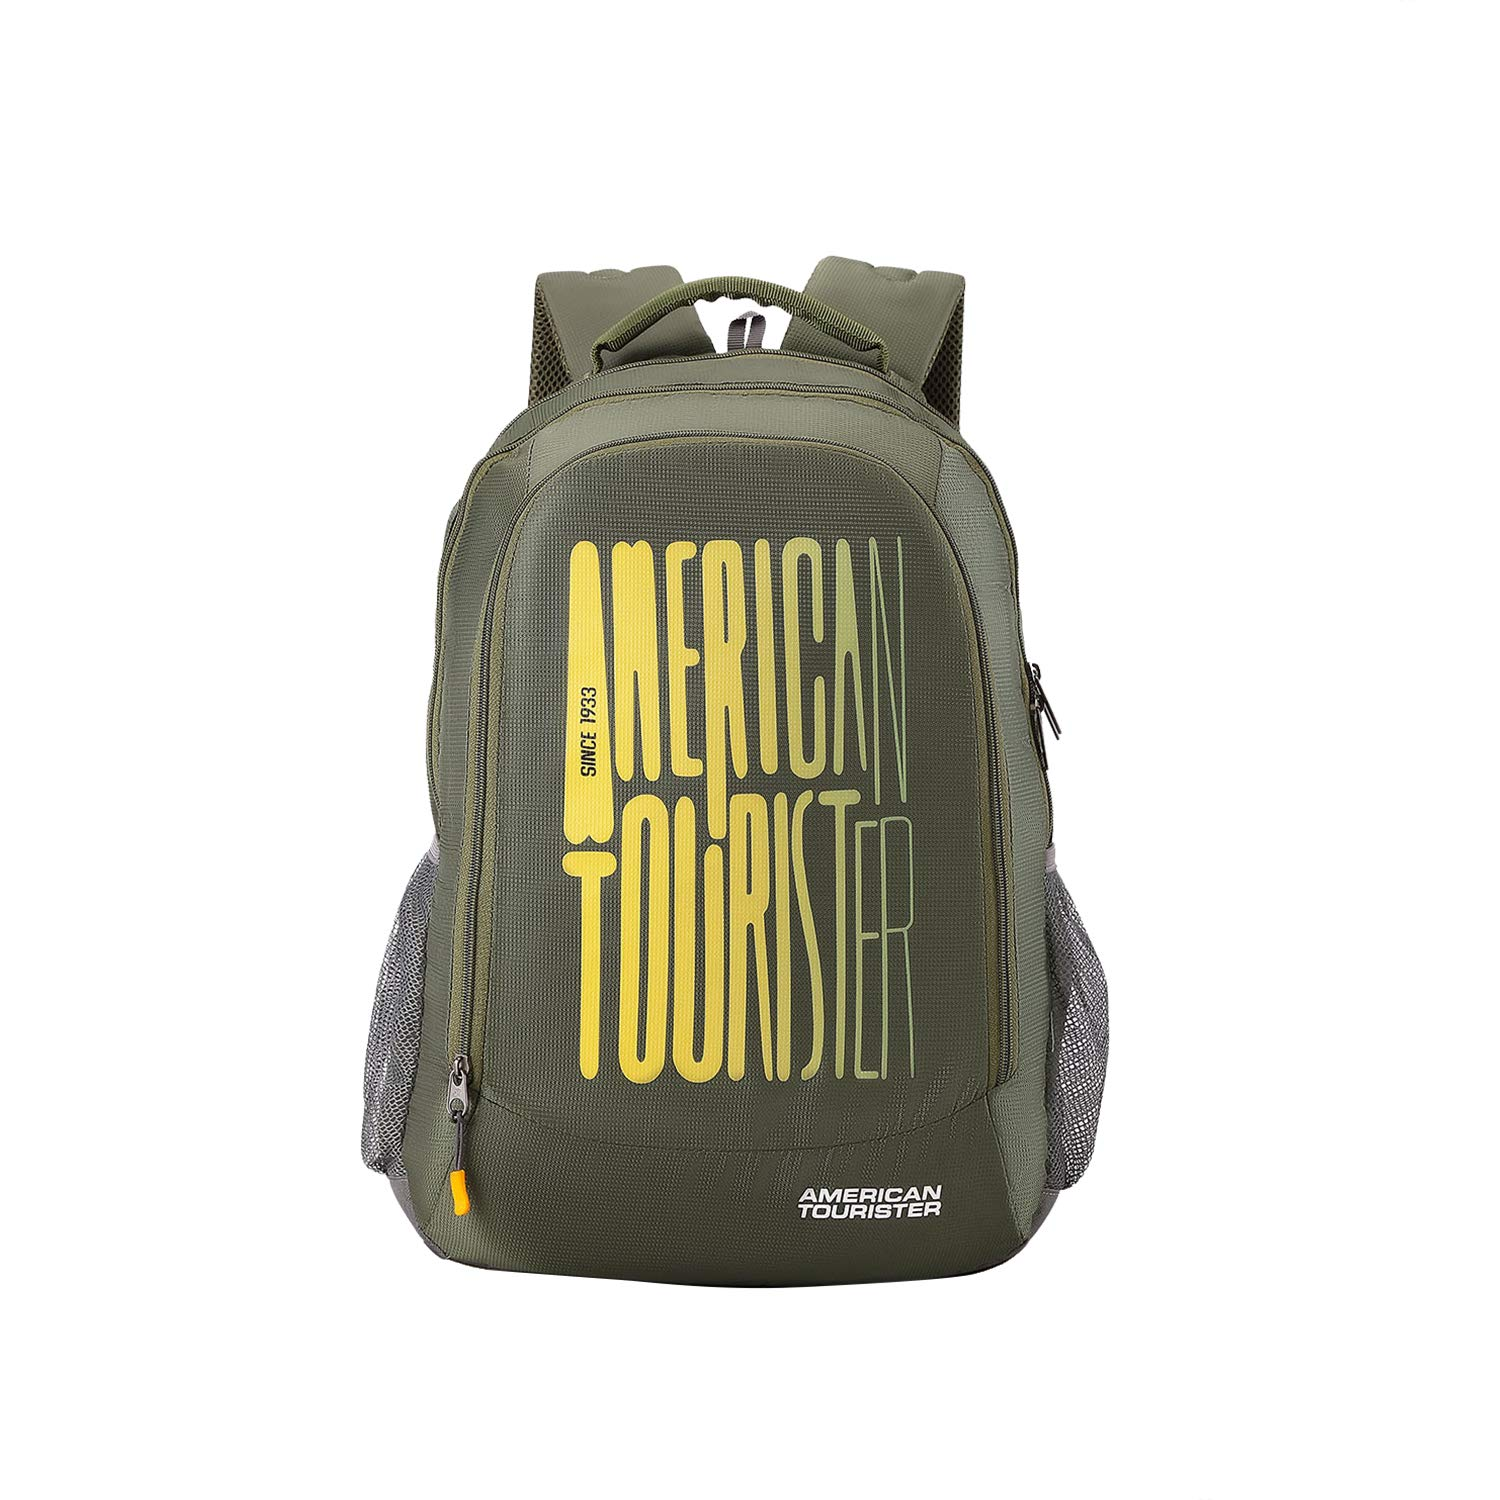 American Tourister 32 Ltrs Olive Casual Backpack